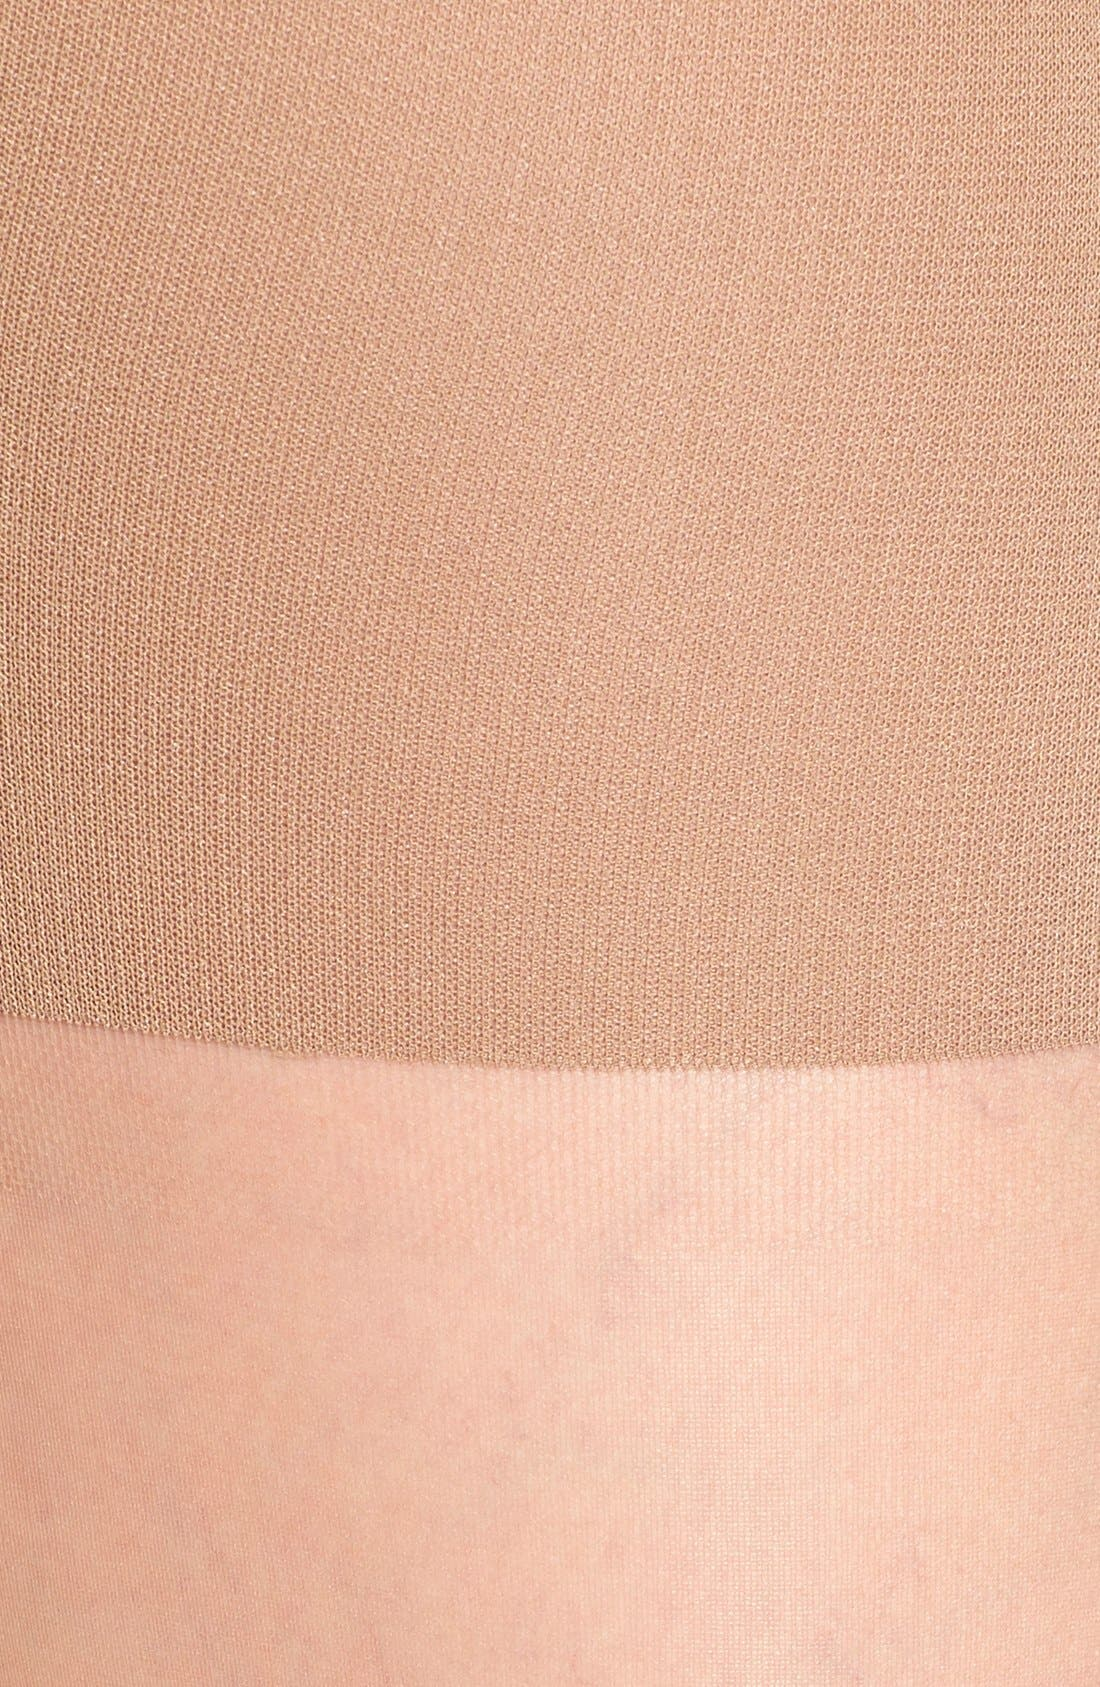 Luxe Leg Pantyhose,                             Alternate thumbnail 2, color,                             Nude 4